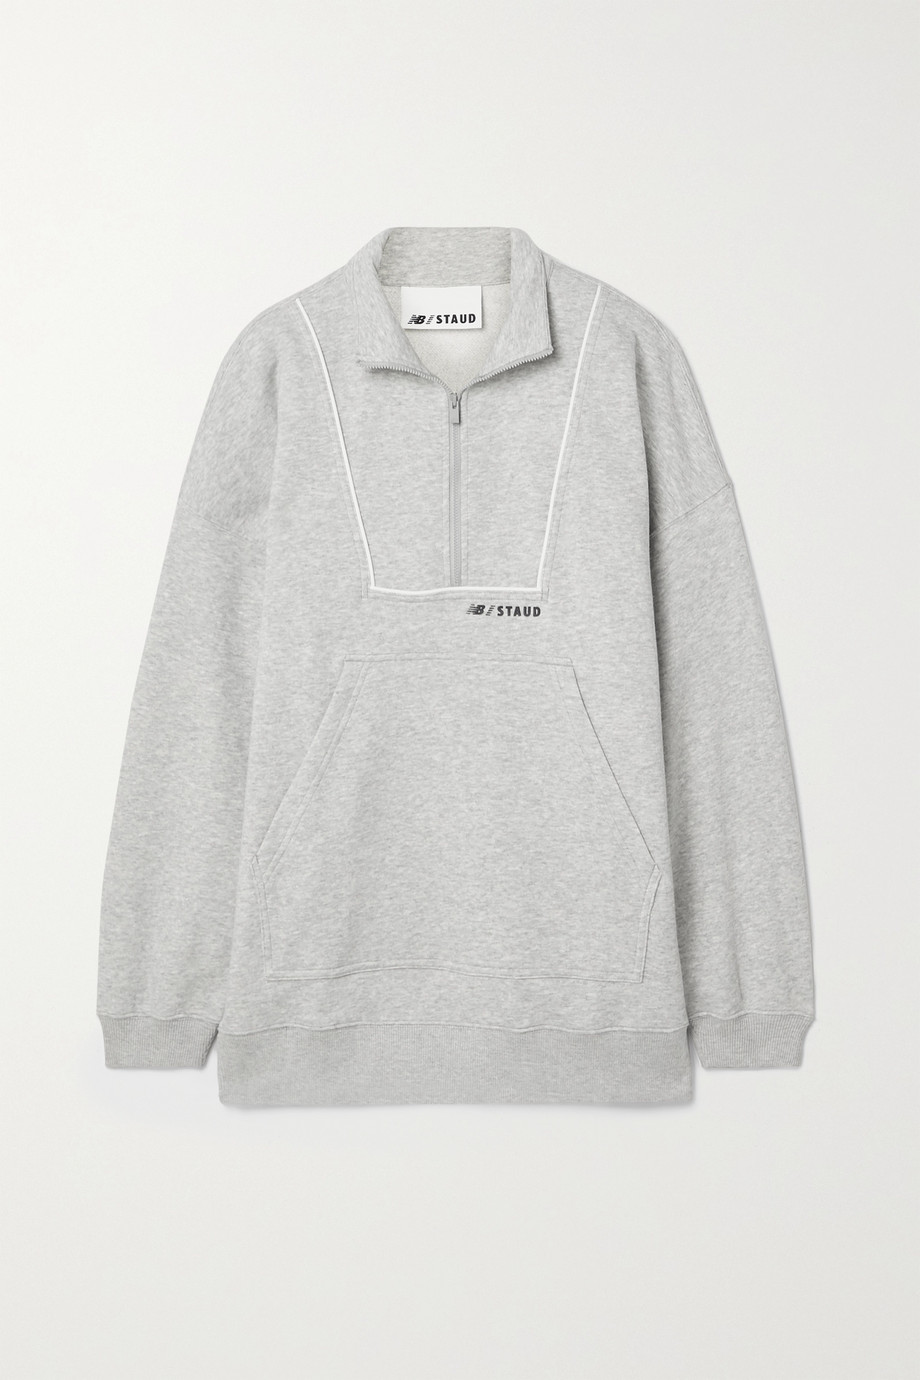 STAUD + New Balance paneled cotton-blend jersey sweatshirt